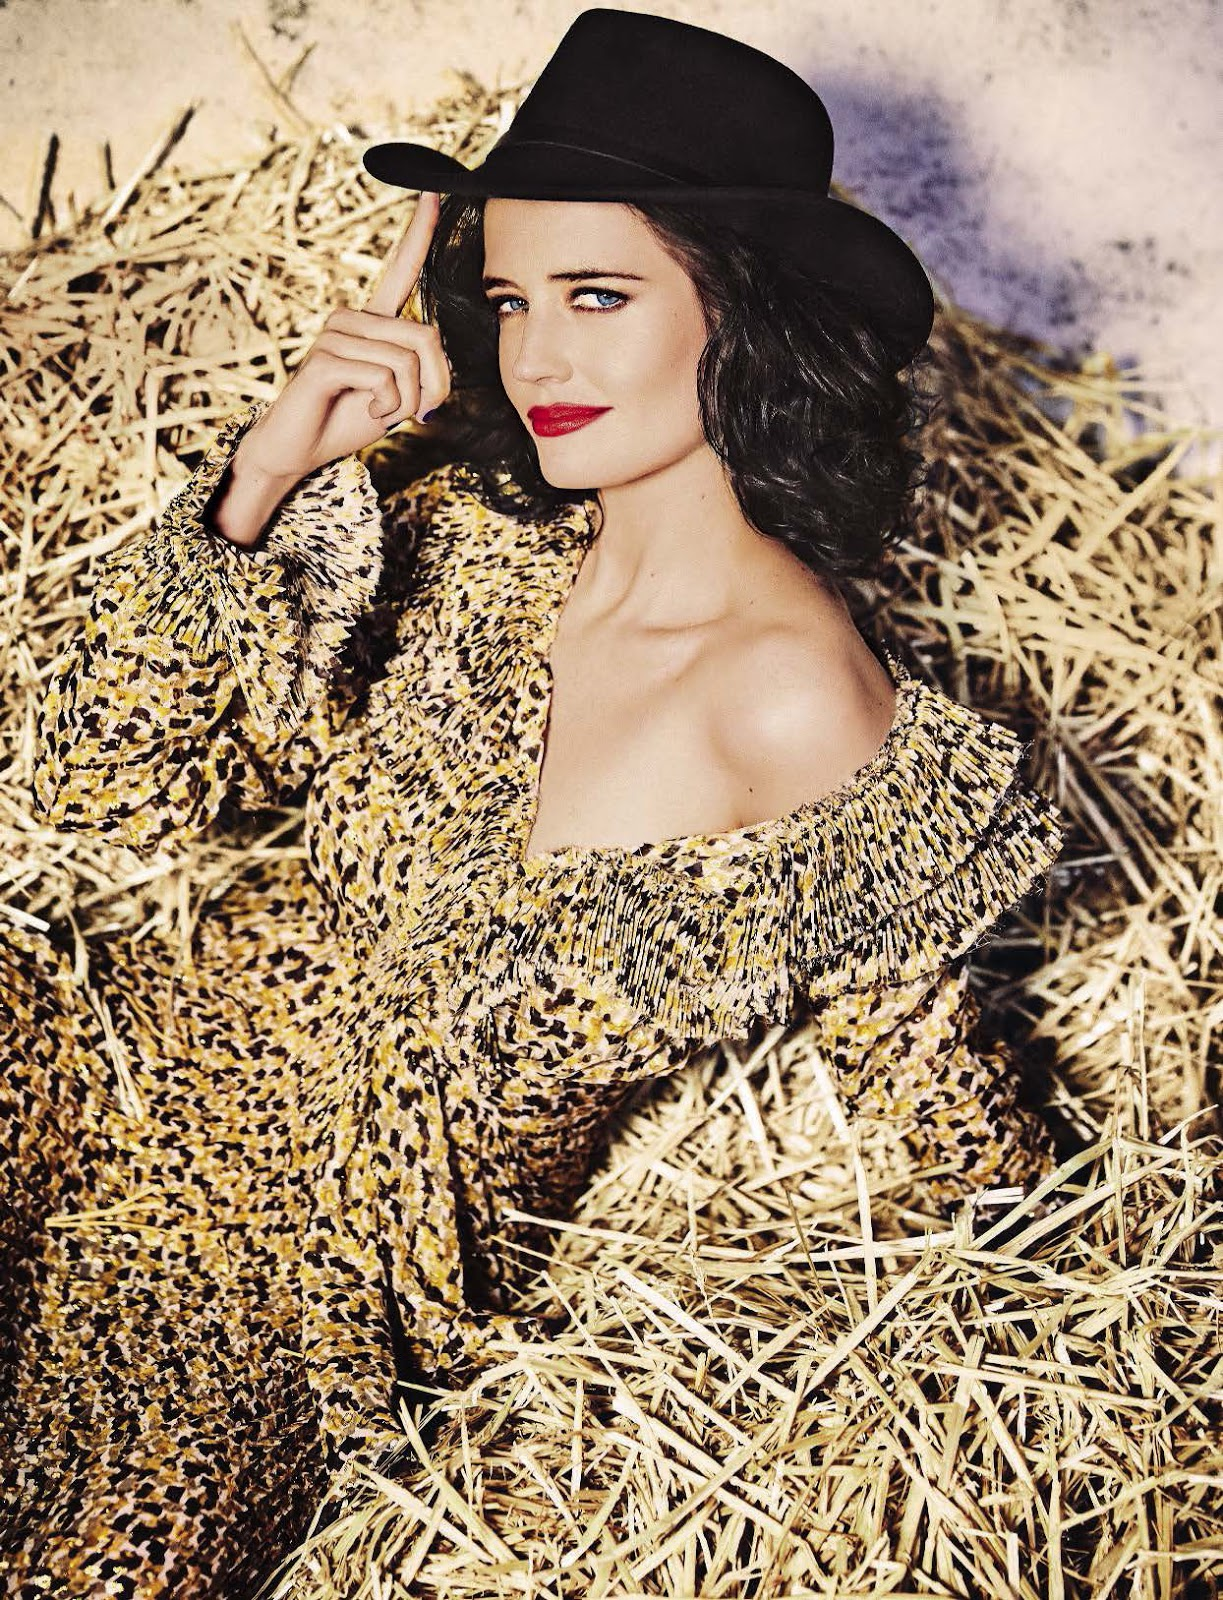 Smile: Eva Green in Glamour Italia August 2016 by Ellen ... Eva Green